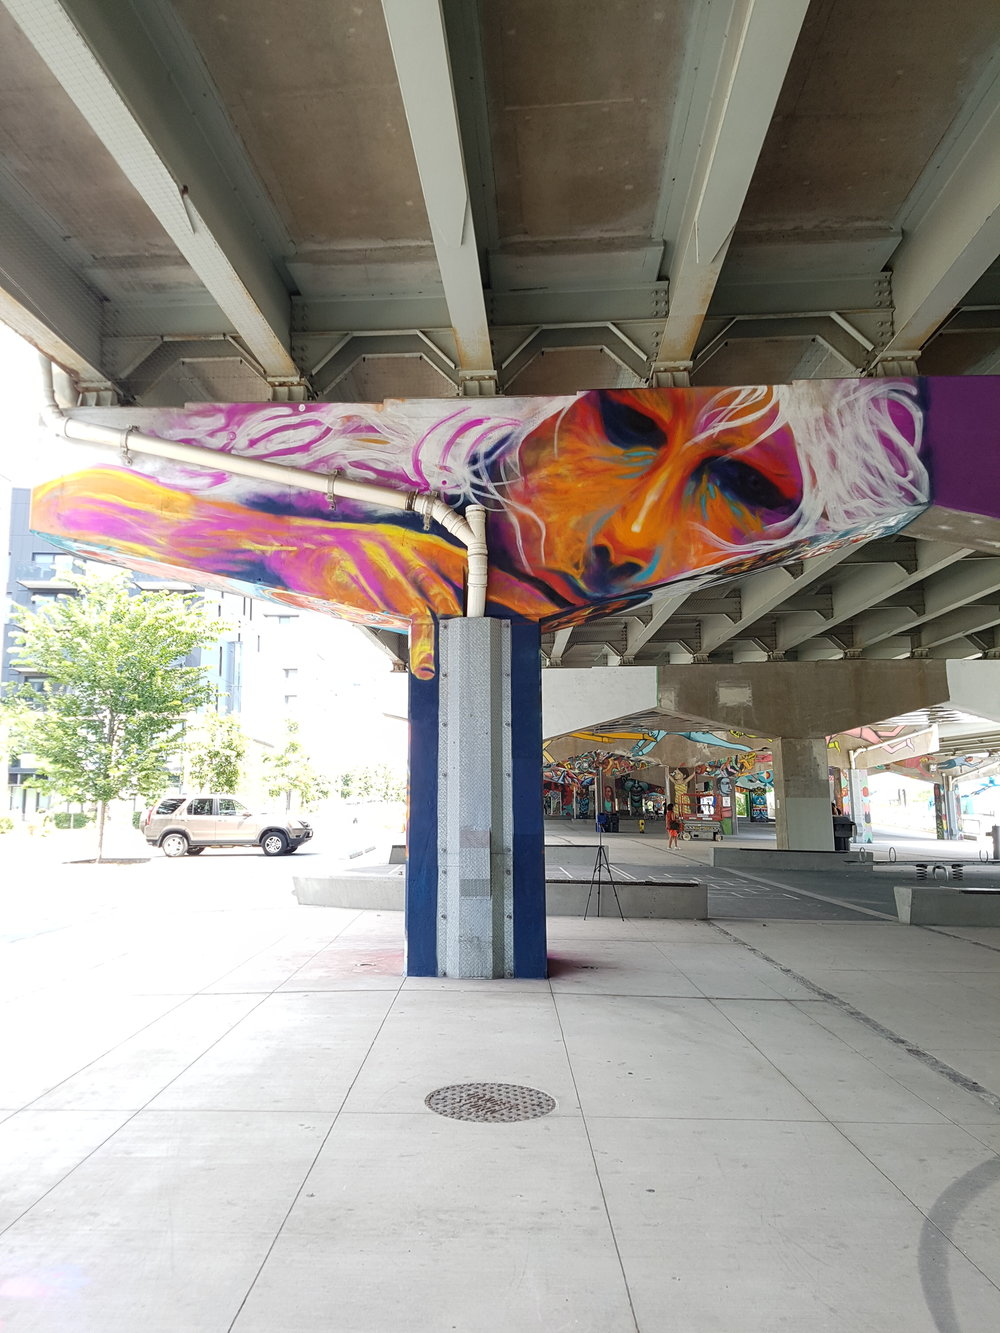 Wide photo of street art in Toronto.